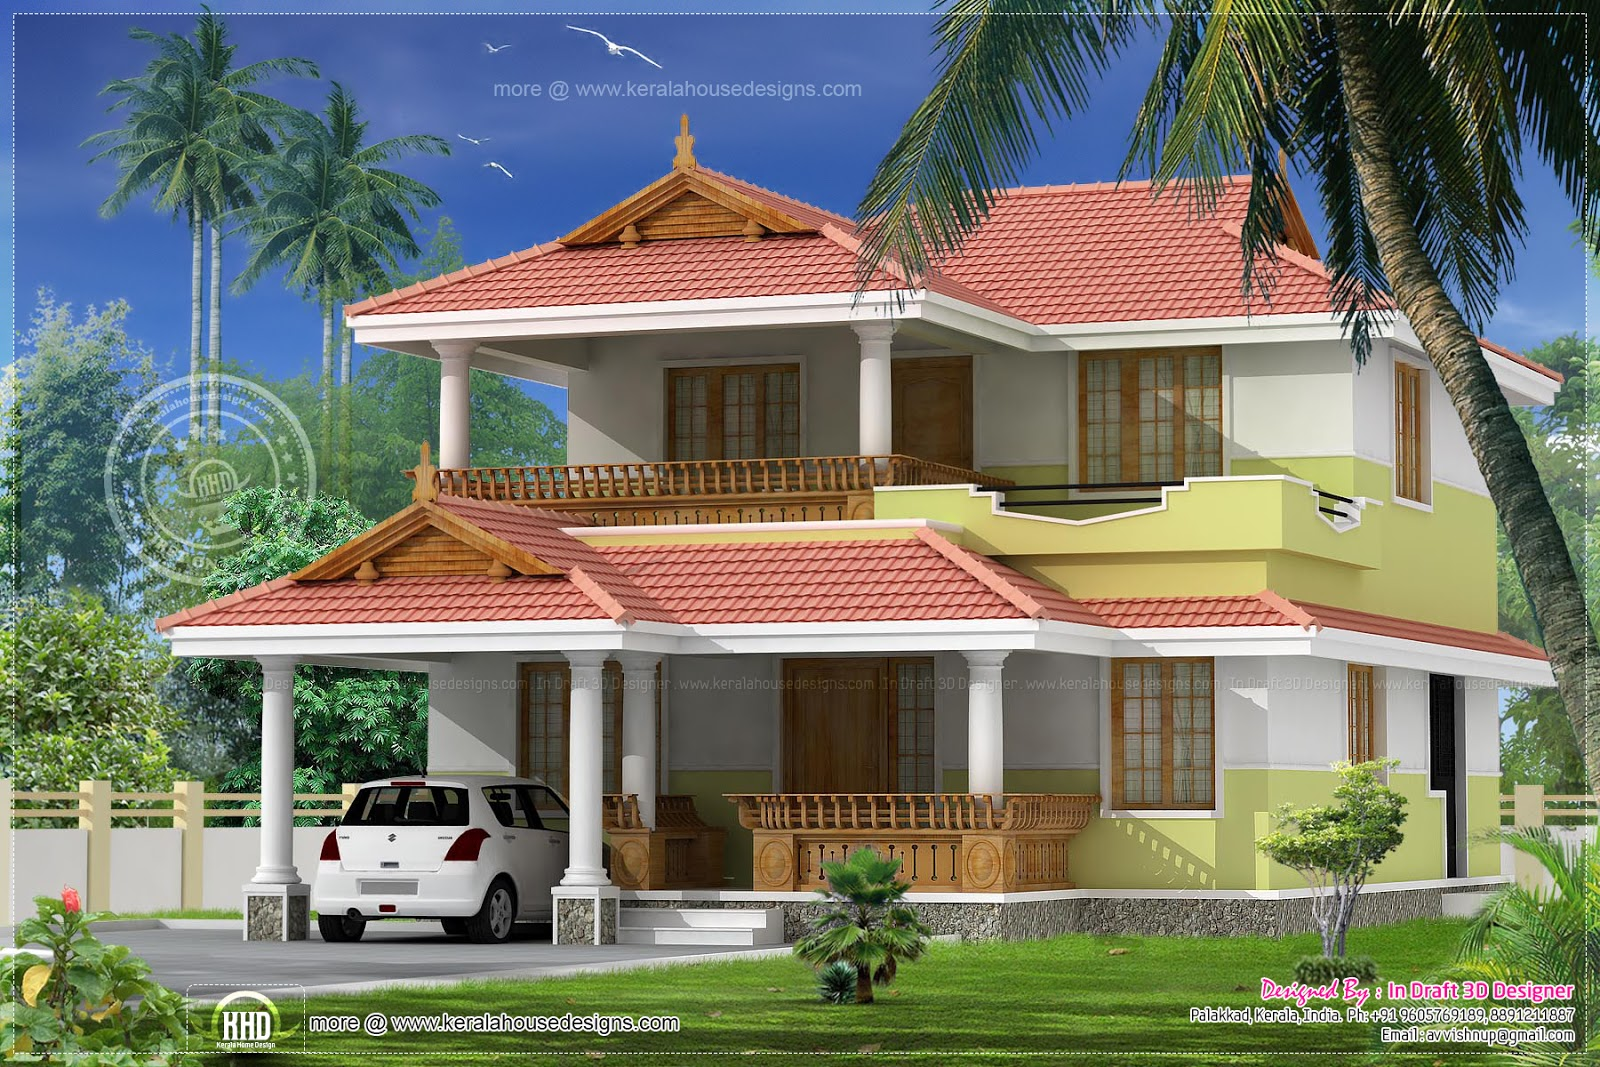 3 Bed Room Traditional Villa 1740 Home Kerala Plans